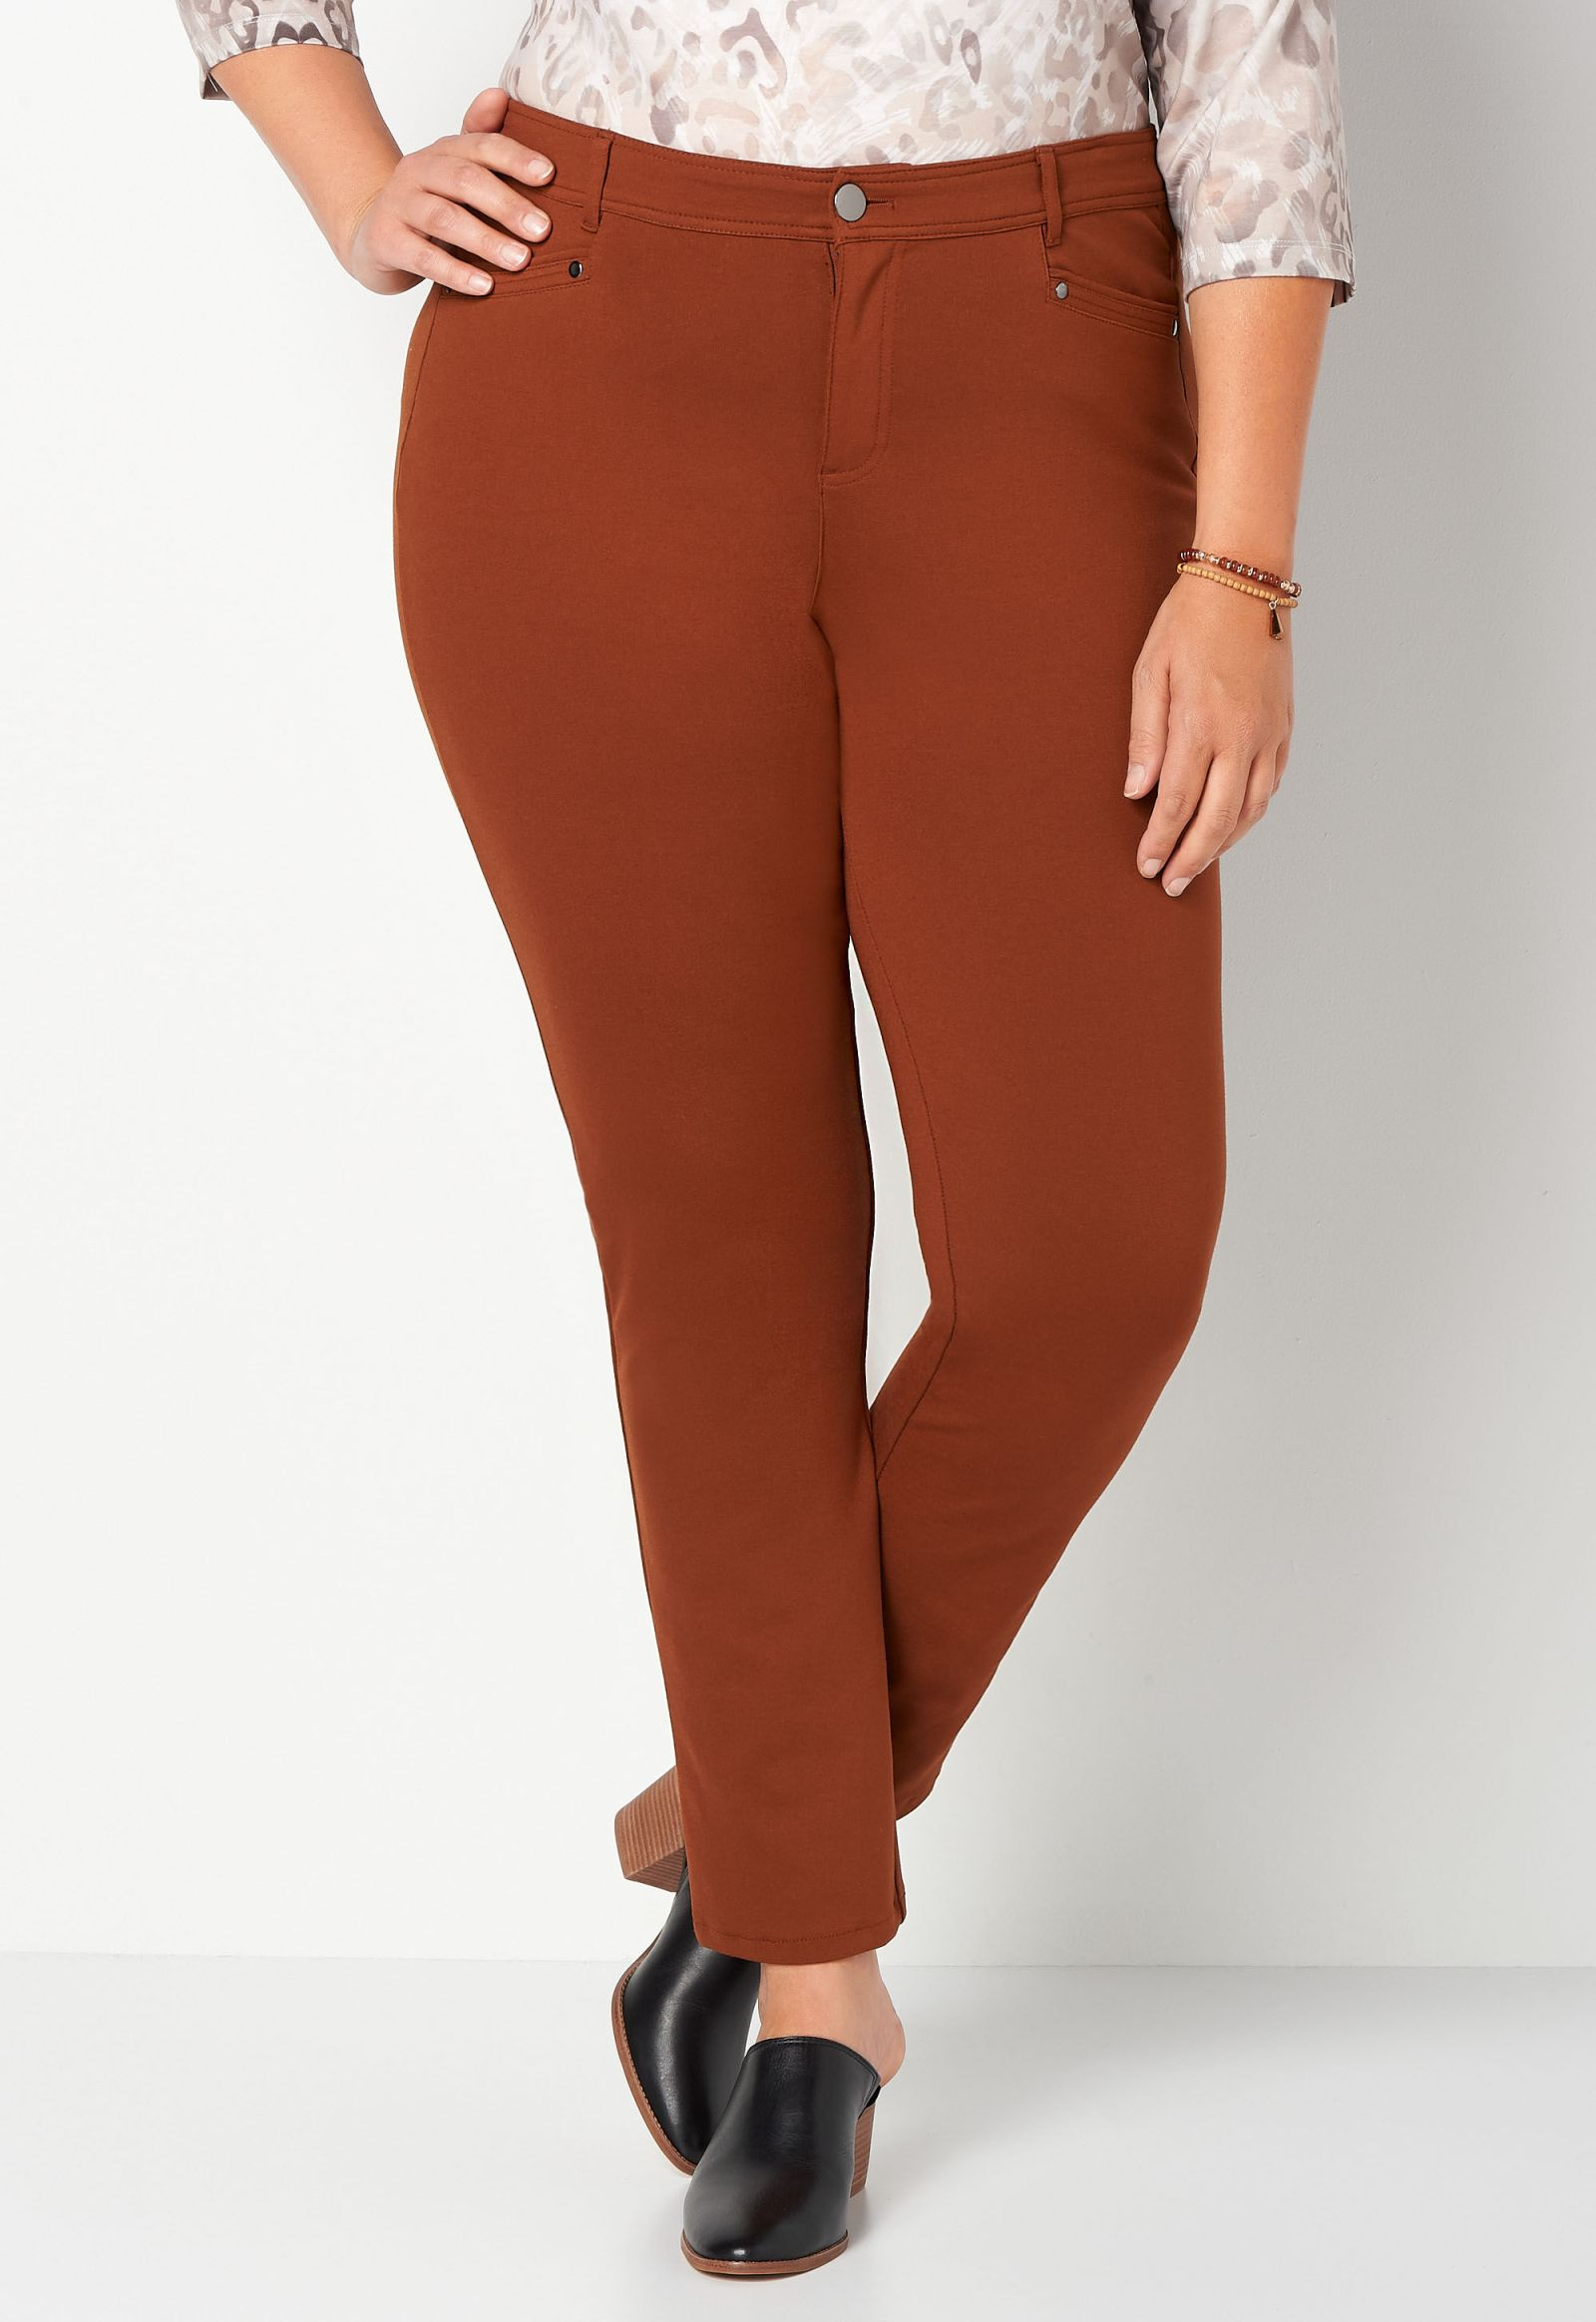 Signature Slimming Ponte Tapered Plus Size Pant Average Shaped Fit 2